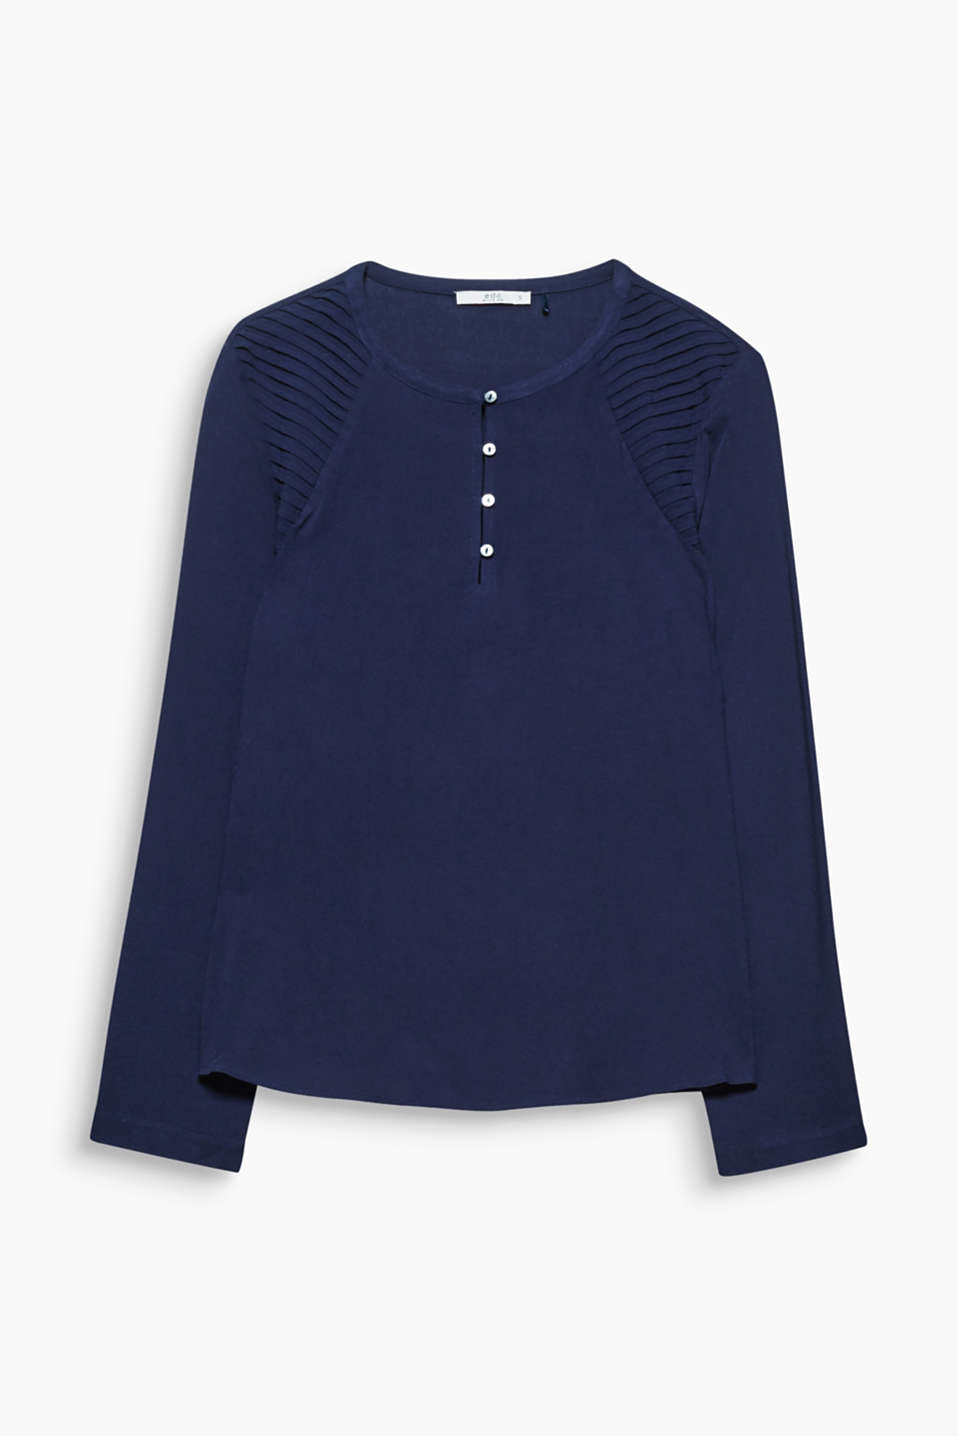 The floaty crêpe fabric and the modest Serafino collar make this blouse an everyday go-to favourite.